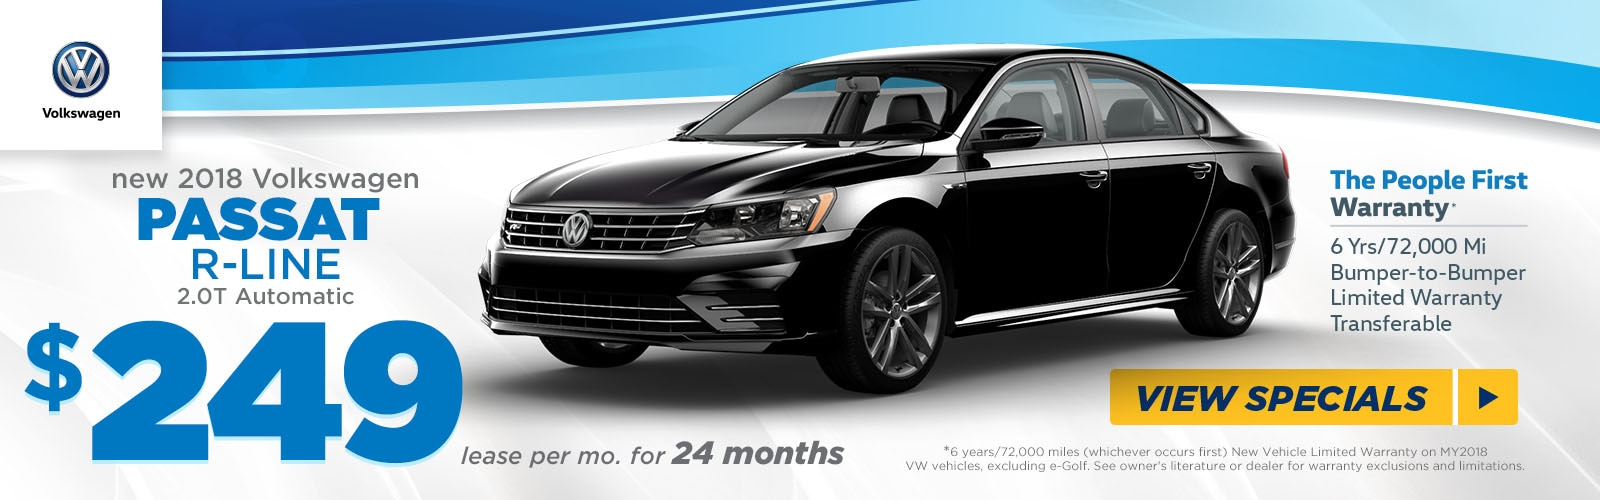 Lease a New 2018 VW Passat R-Line for $249/mo at Fred ...